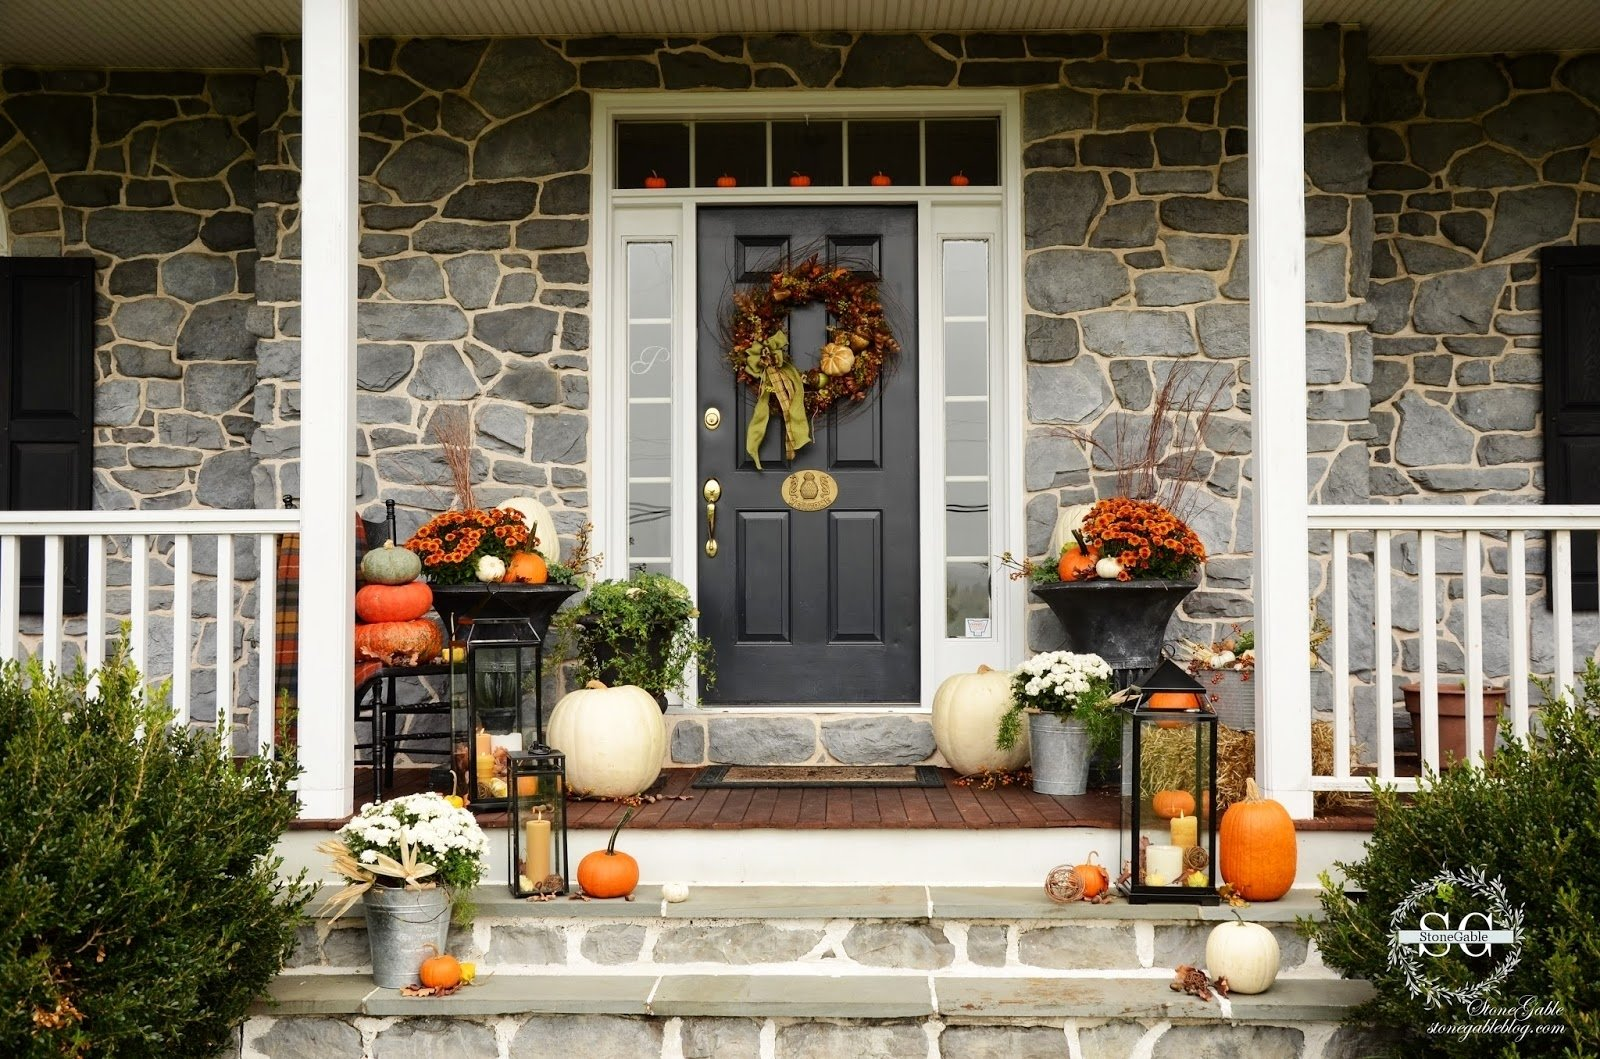 10 Lovely Front Porch Decorating Ideas For Fall fall on the front porch stonegable front porch fall decorating ideas 2 2020